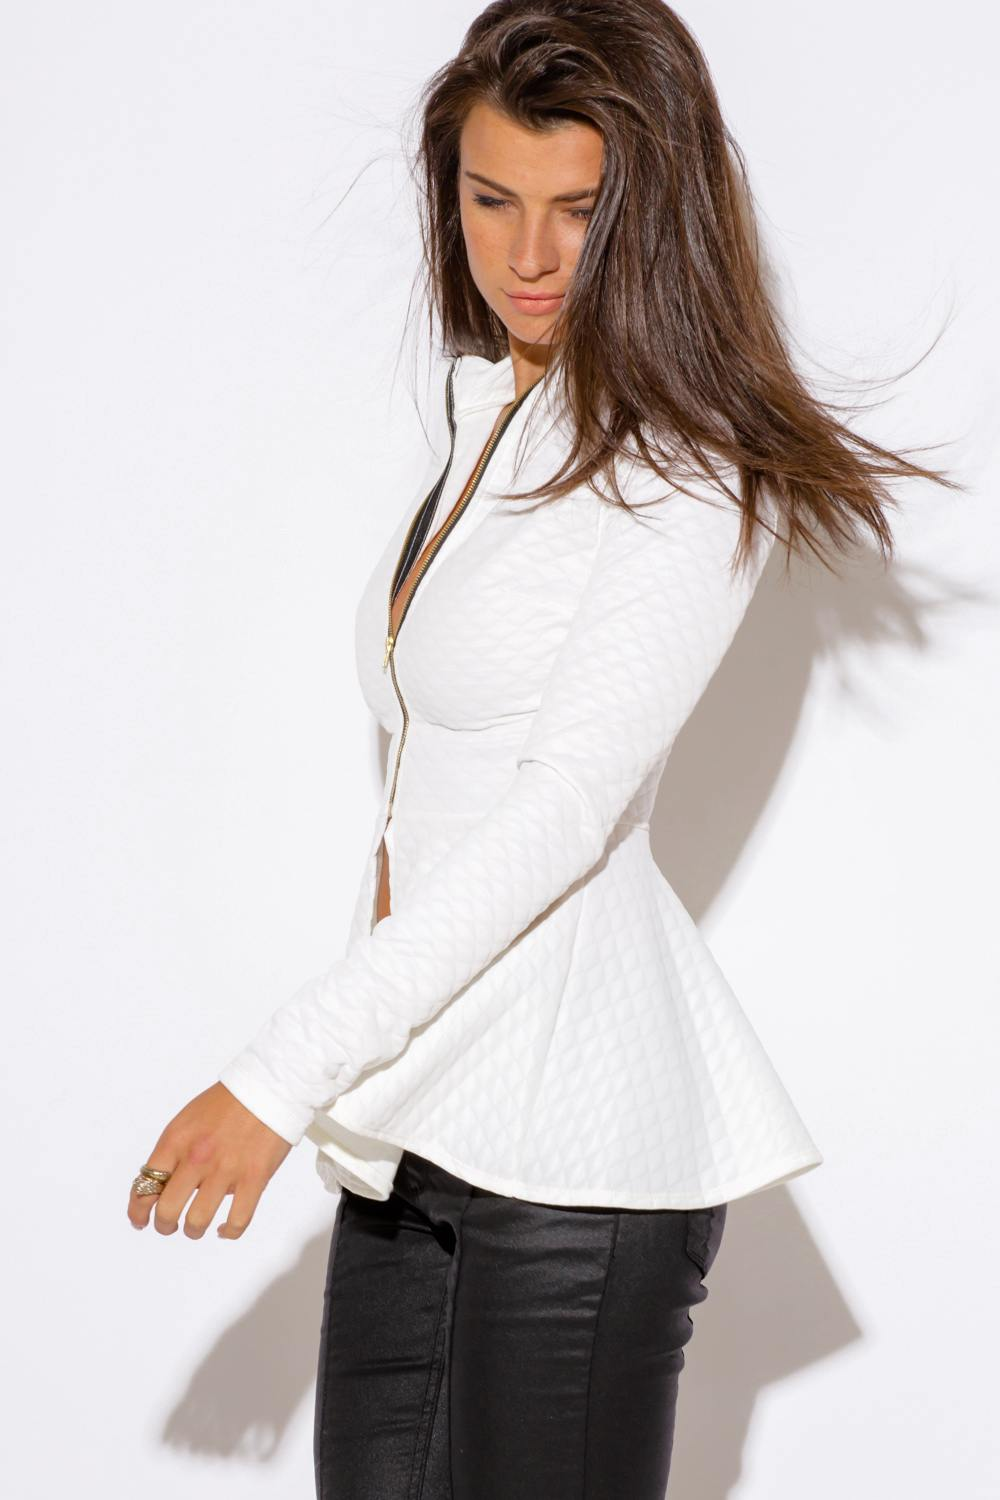 Rated 5 out of 5 by EastCoast44 from So impressed with this jacket I'll bet I've been looking for the perfect peplum/flare hem white blazer for 5 years. I am annoyingly picky about blazers, and I could never find one that checked off all the boxes until I saw this one/5(50).